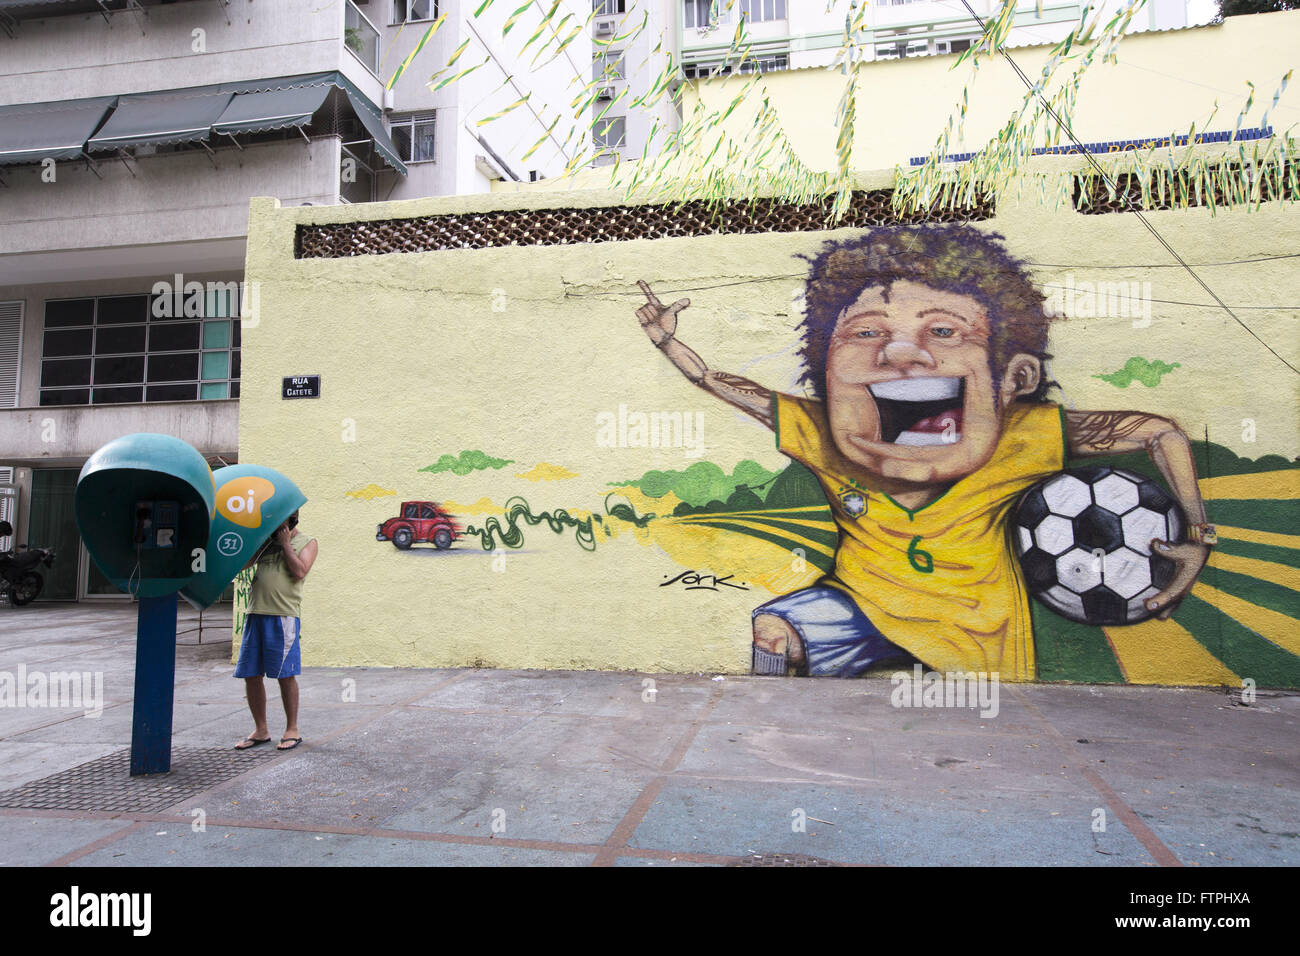 Wall Street in Cattete decorated for the 2014 FIFA World Cup - Stock Image